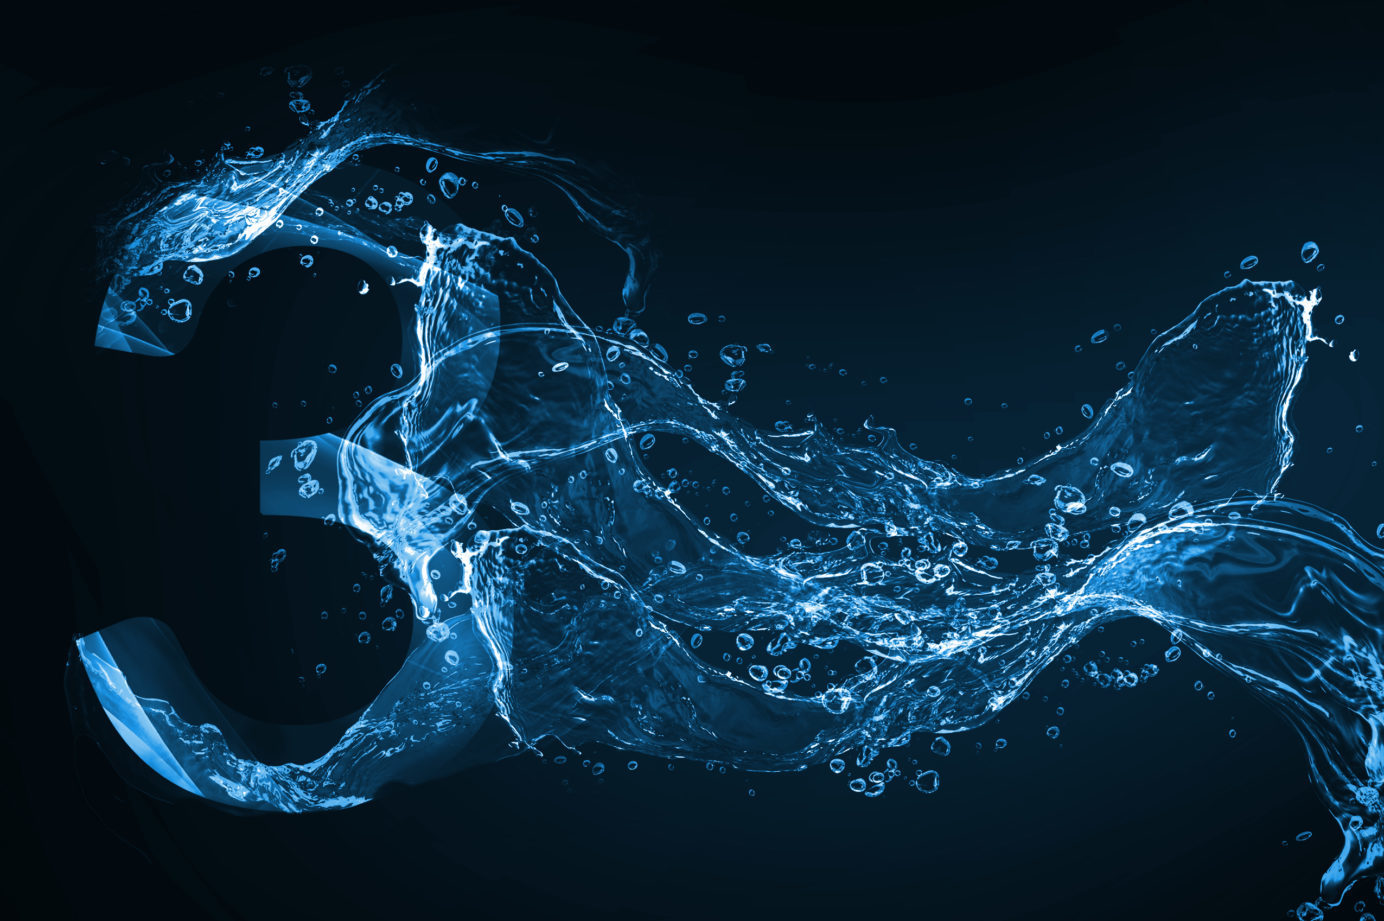 The number 3 with flowing water on black background